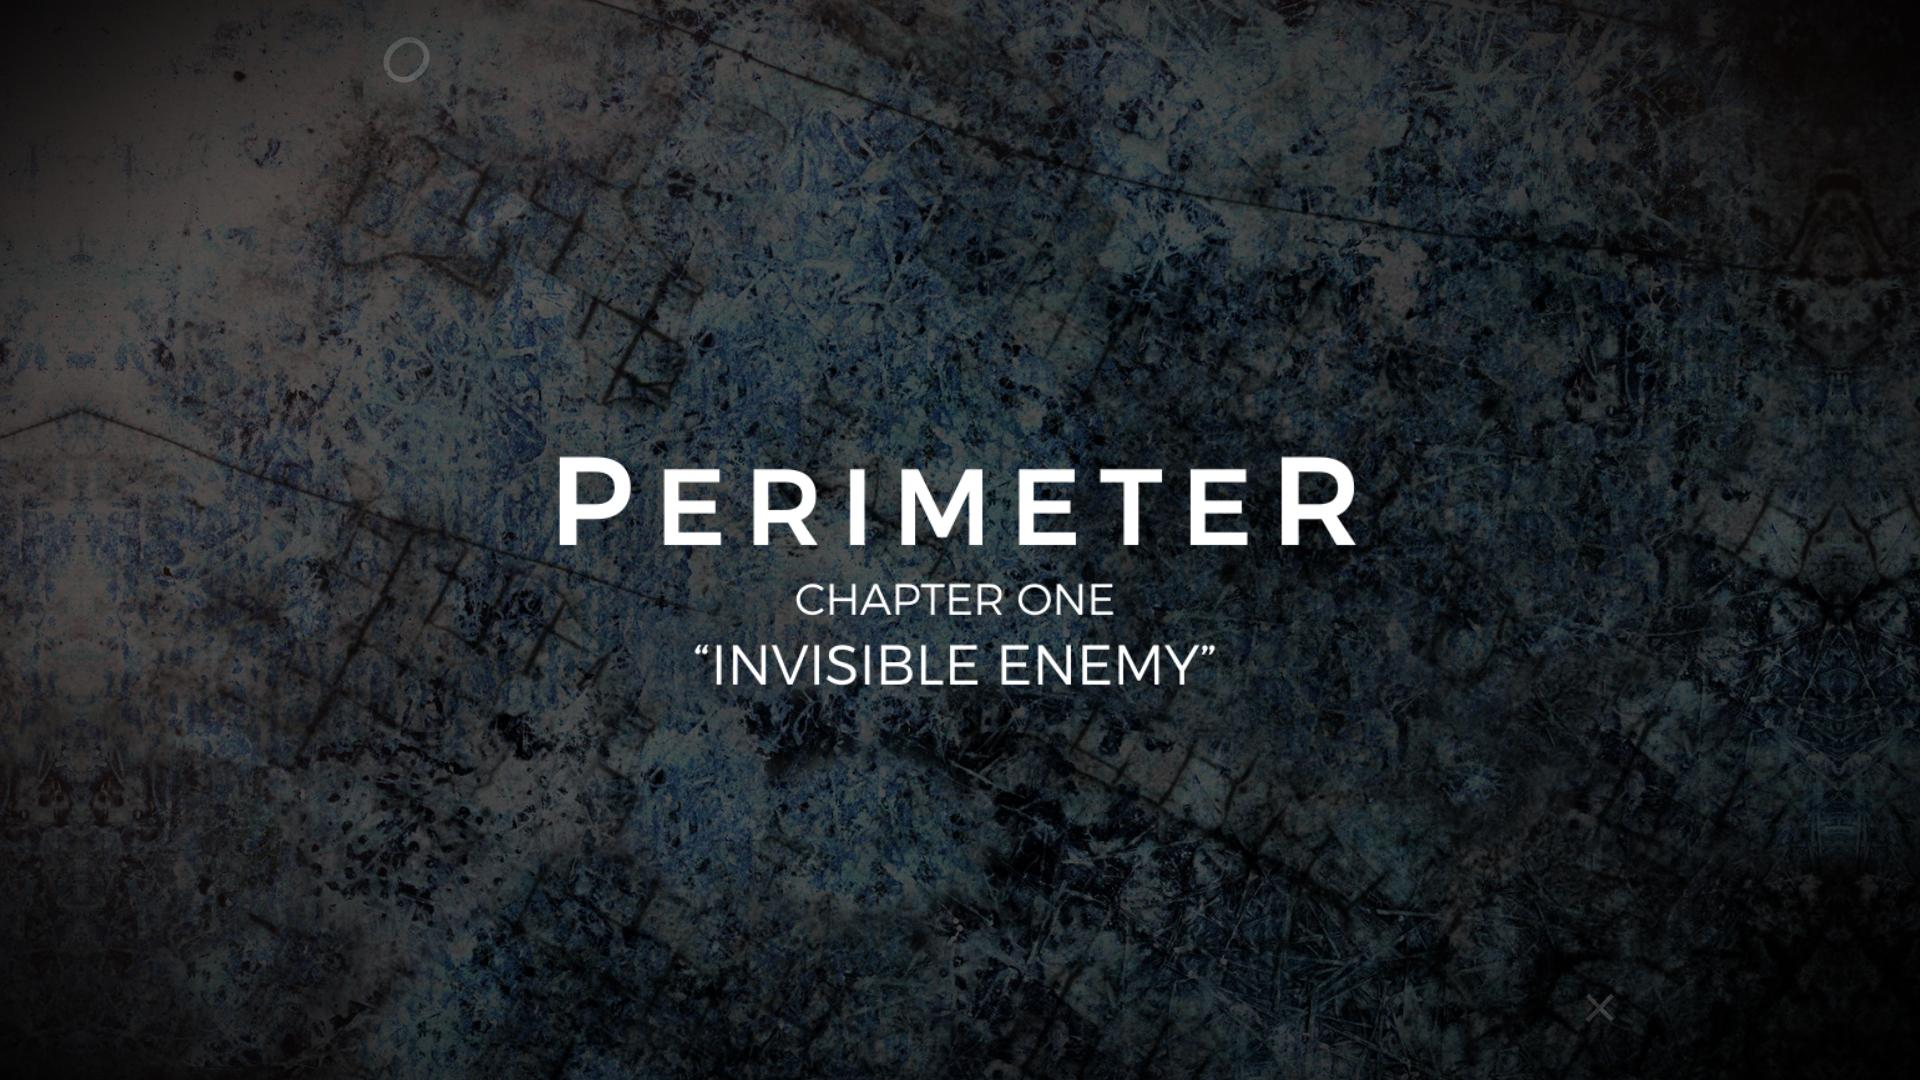 Perimeter - Movie Titles And Teaser - 5